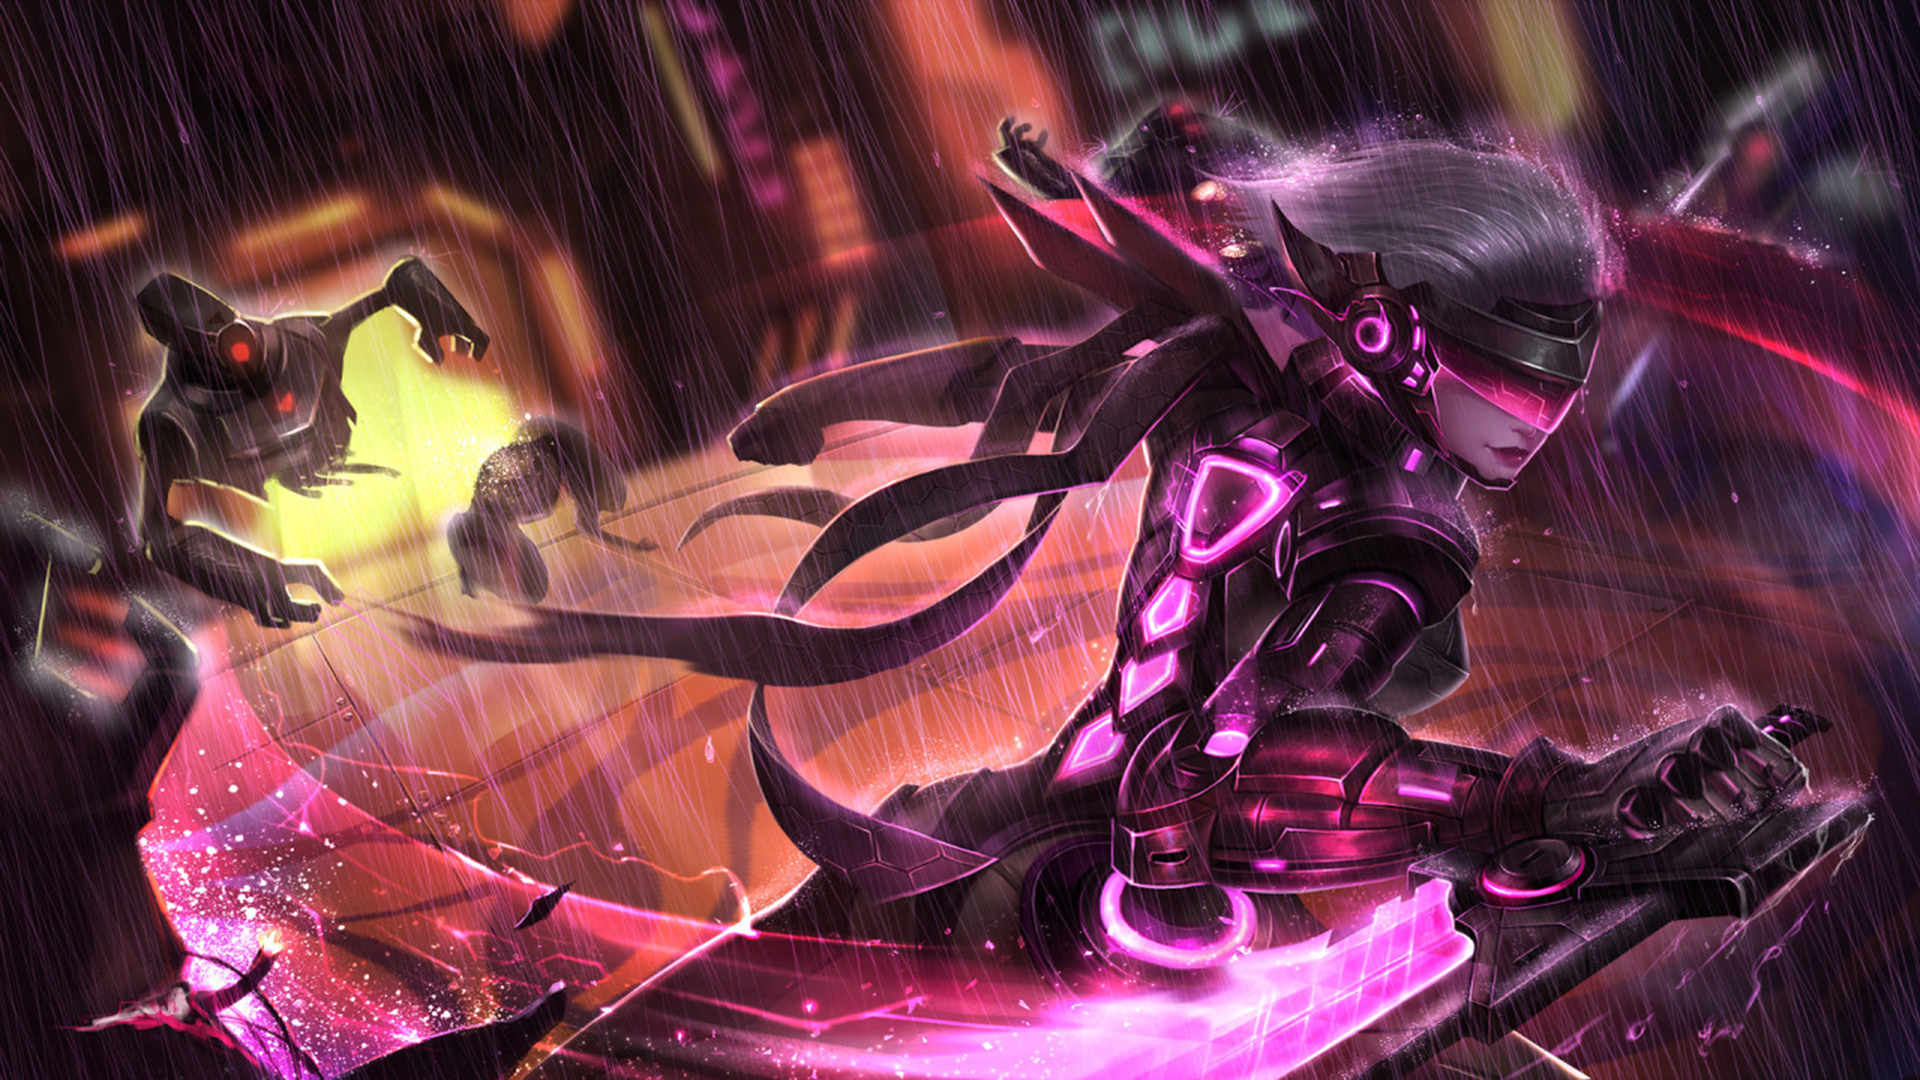 PROJECT Fiora Art Of Lol